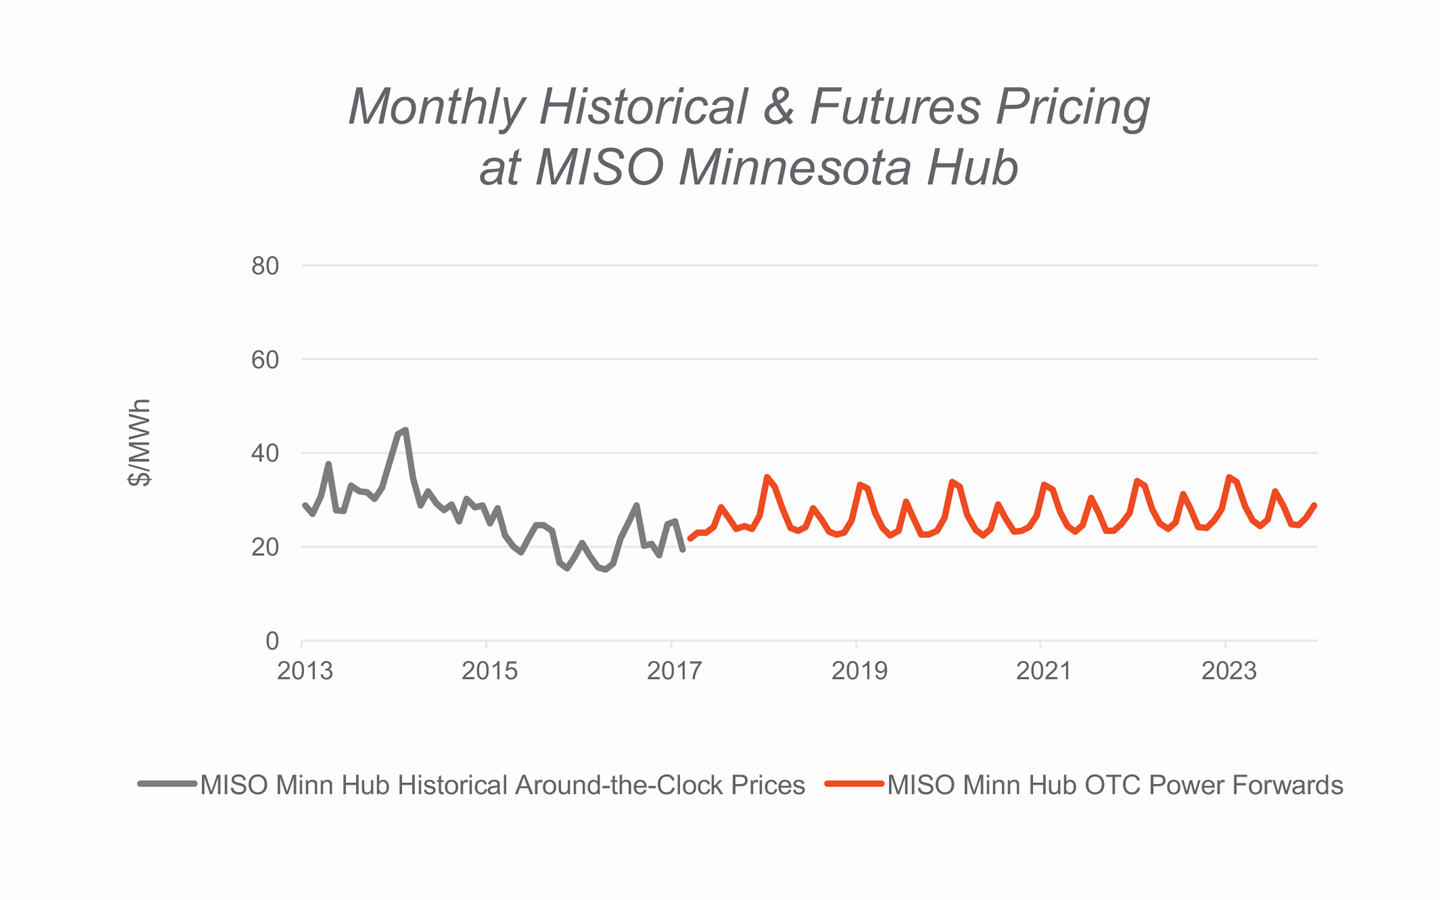 Monthly Historical & Futures Pricing at MISO Minnesota Hub